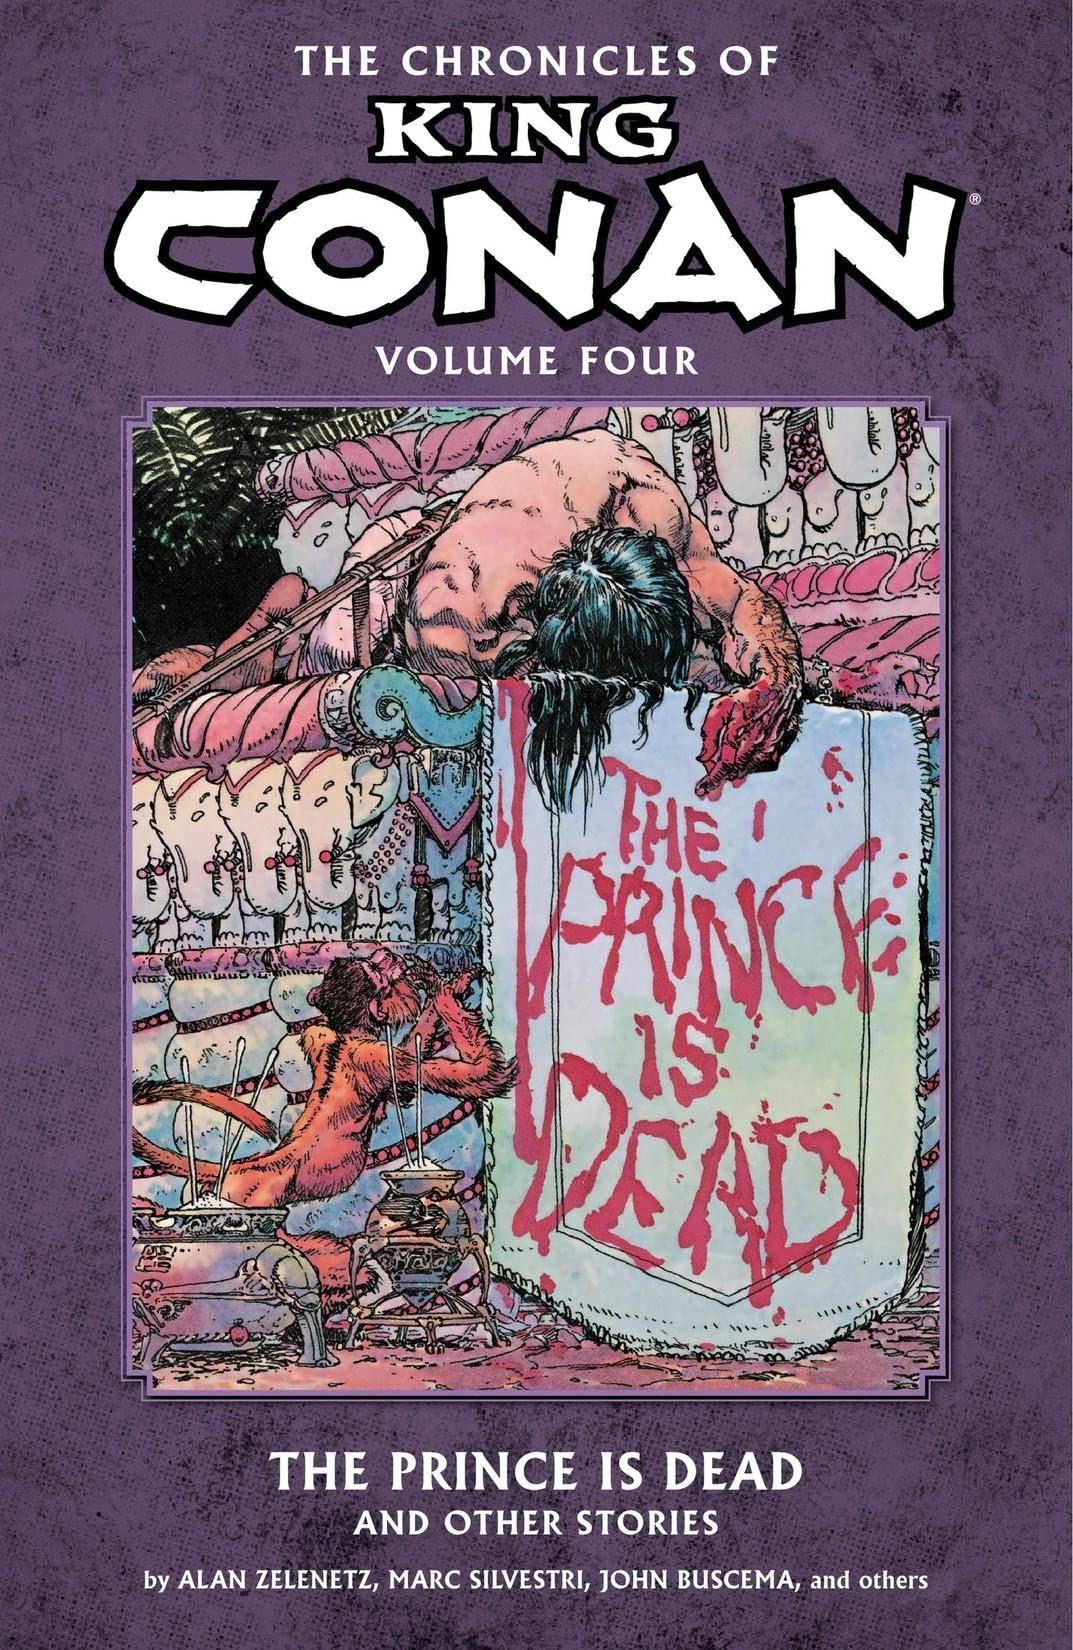 The Chronicles of King Conan Vol. 4: The Prince Is Dead and Other Stories